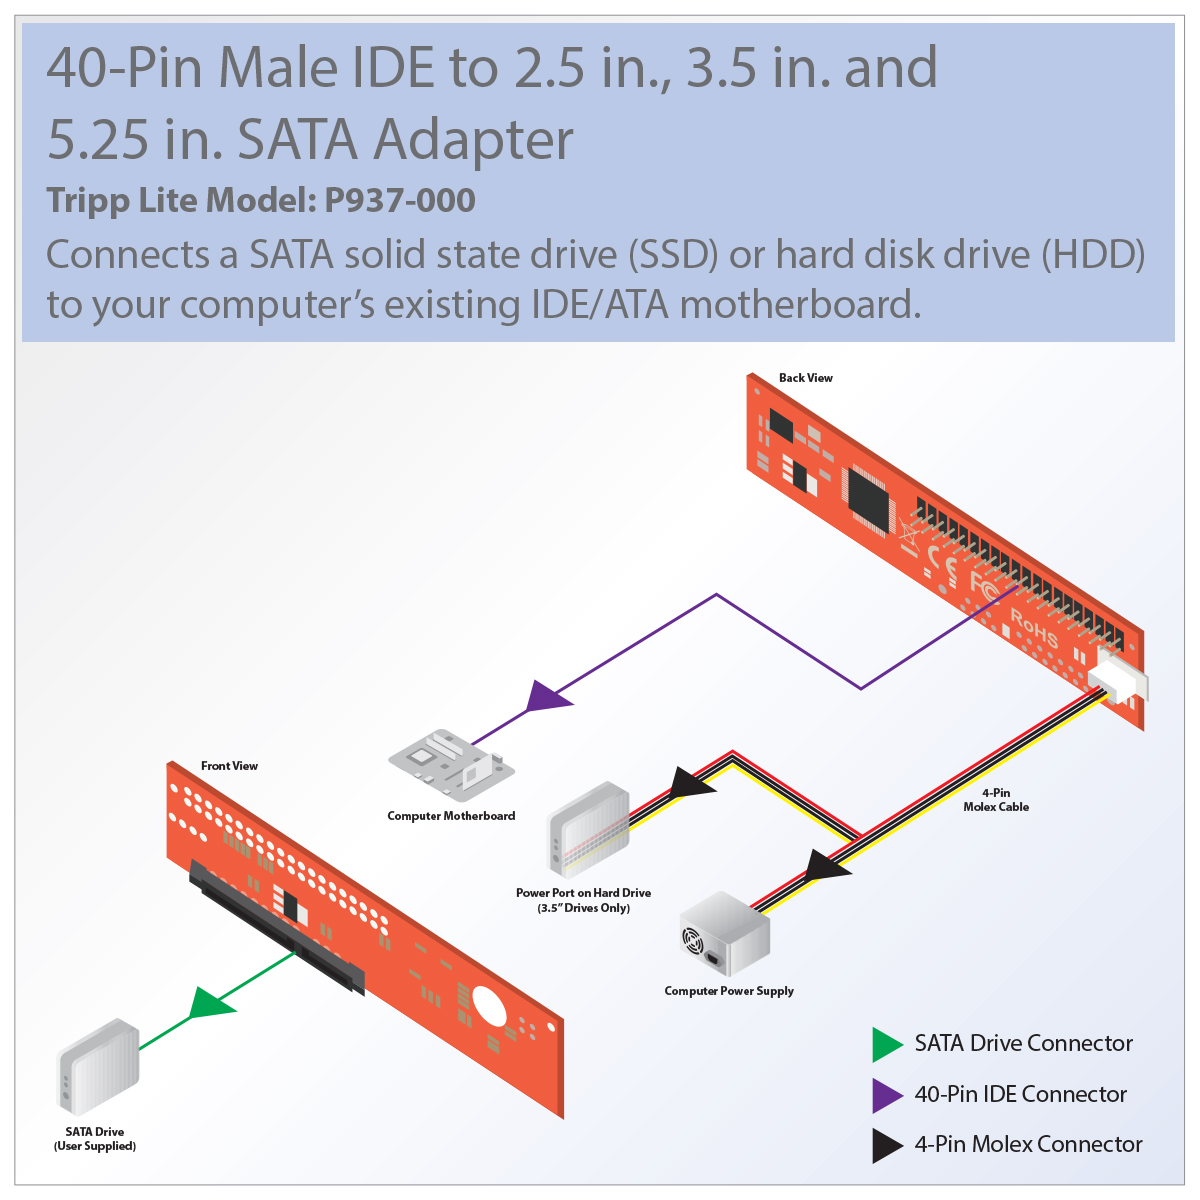 Tripp Lite 40 Pin Male Ide To 25in 35in 525in Sata Adapter Ssd Molex Wiring Diagram Helps You Connect A New Drive An Older Motherboard